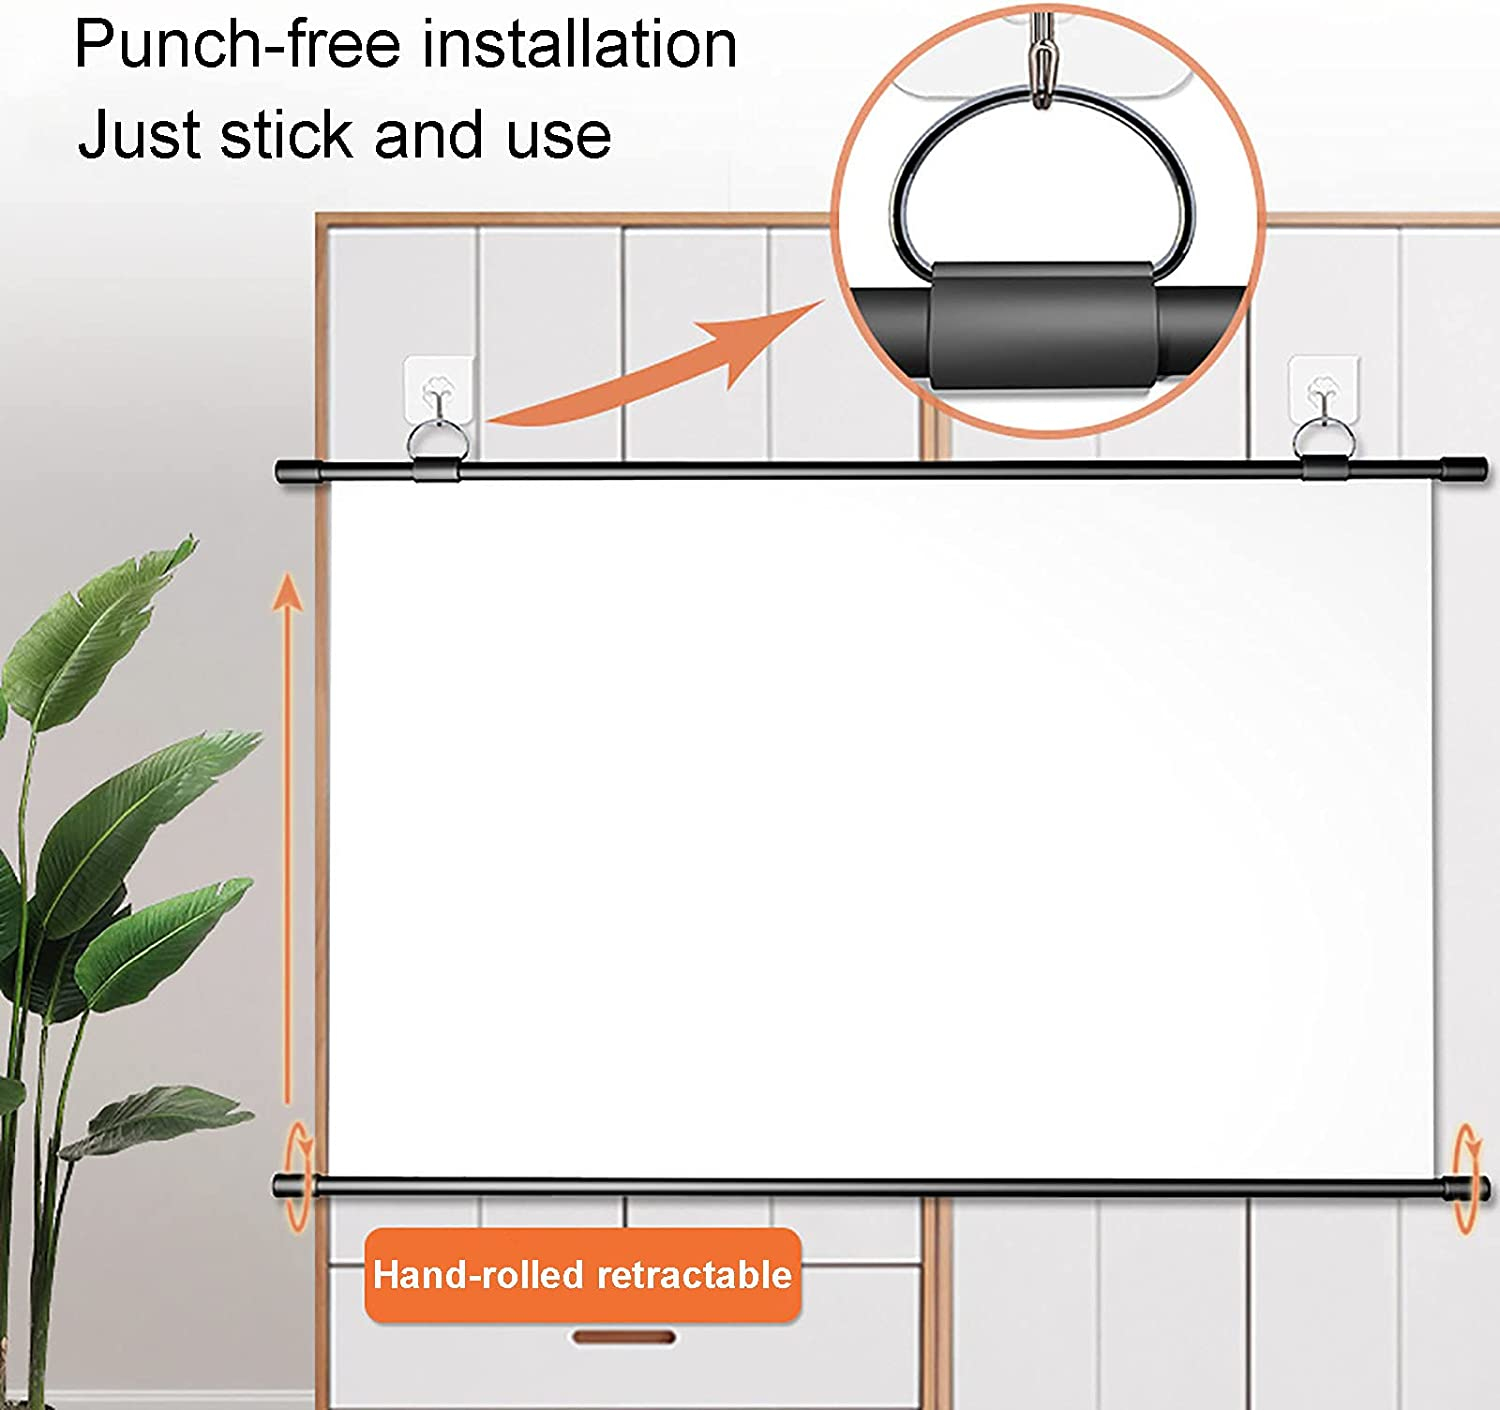 YFF-Corrimano Portable Projection Screen 4:3/16:9 HD Punch-Free Foldable Projection Screen Wall-Mounted Projection Screen, for Home Theater, Conference Presentation, Courtyard Party